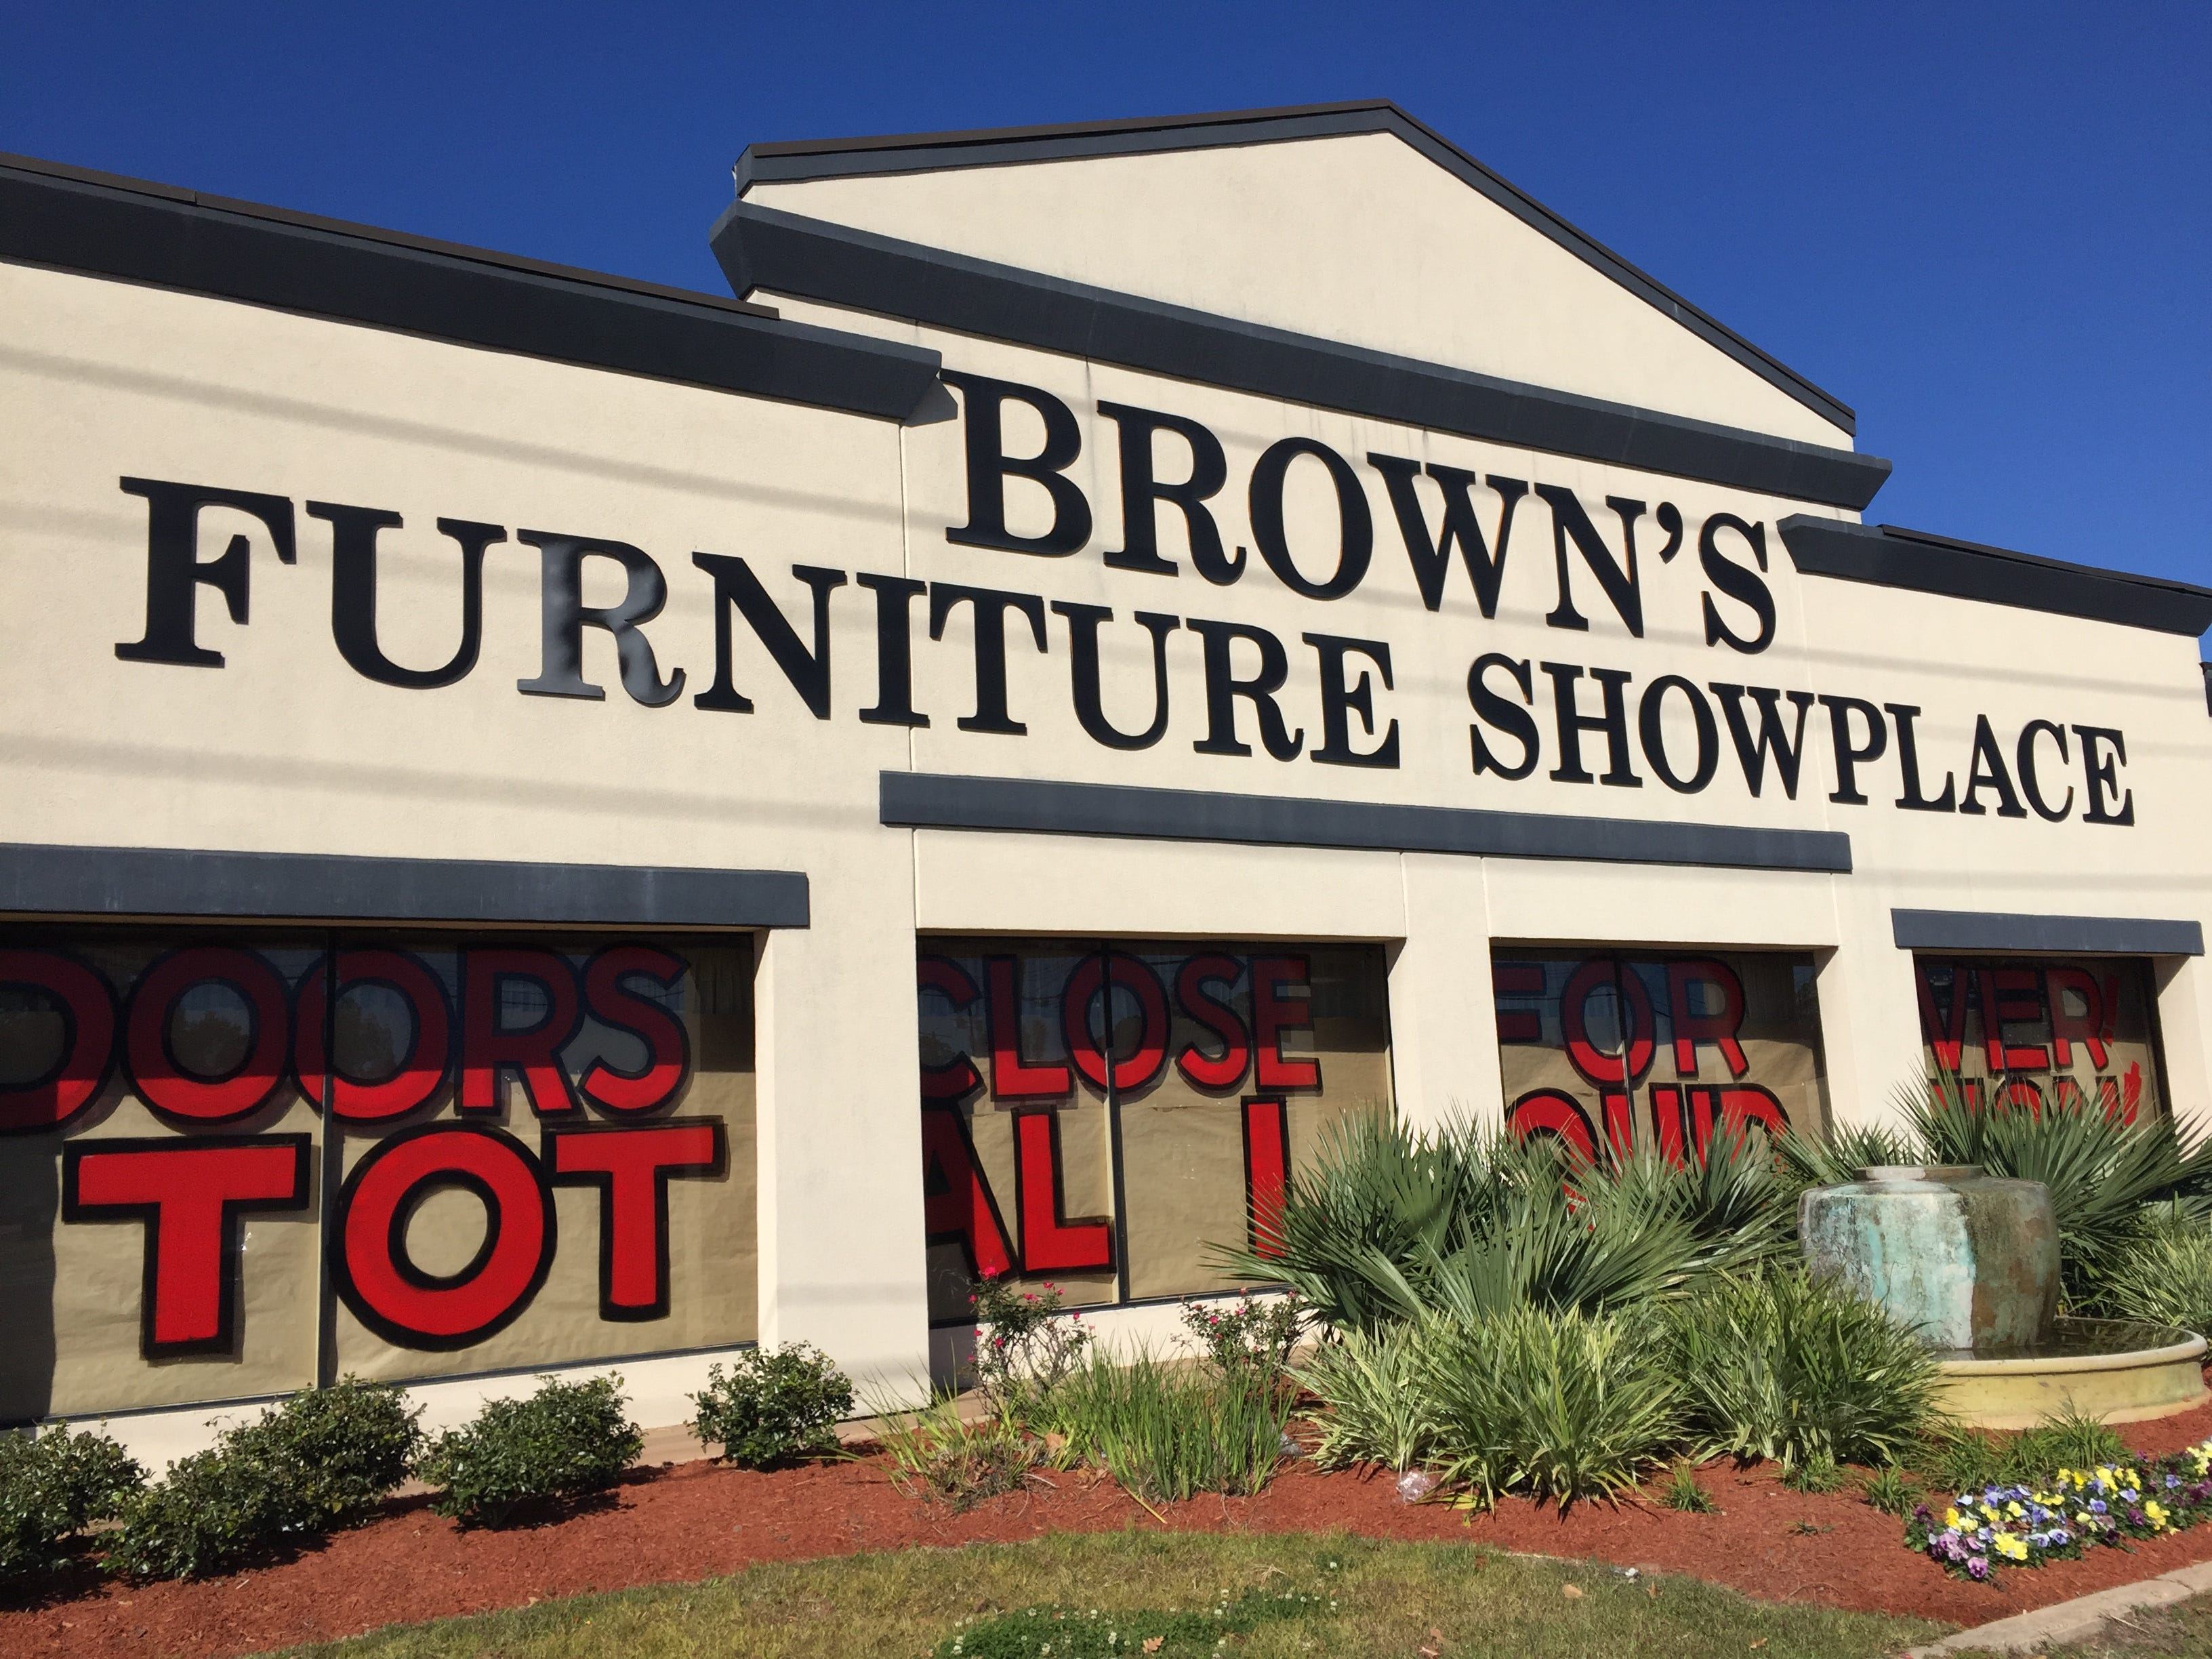 brownu0027s furniture showplace closing on johnston street in lafayette louisiana